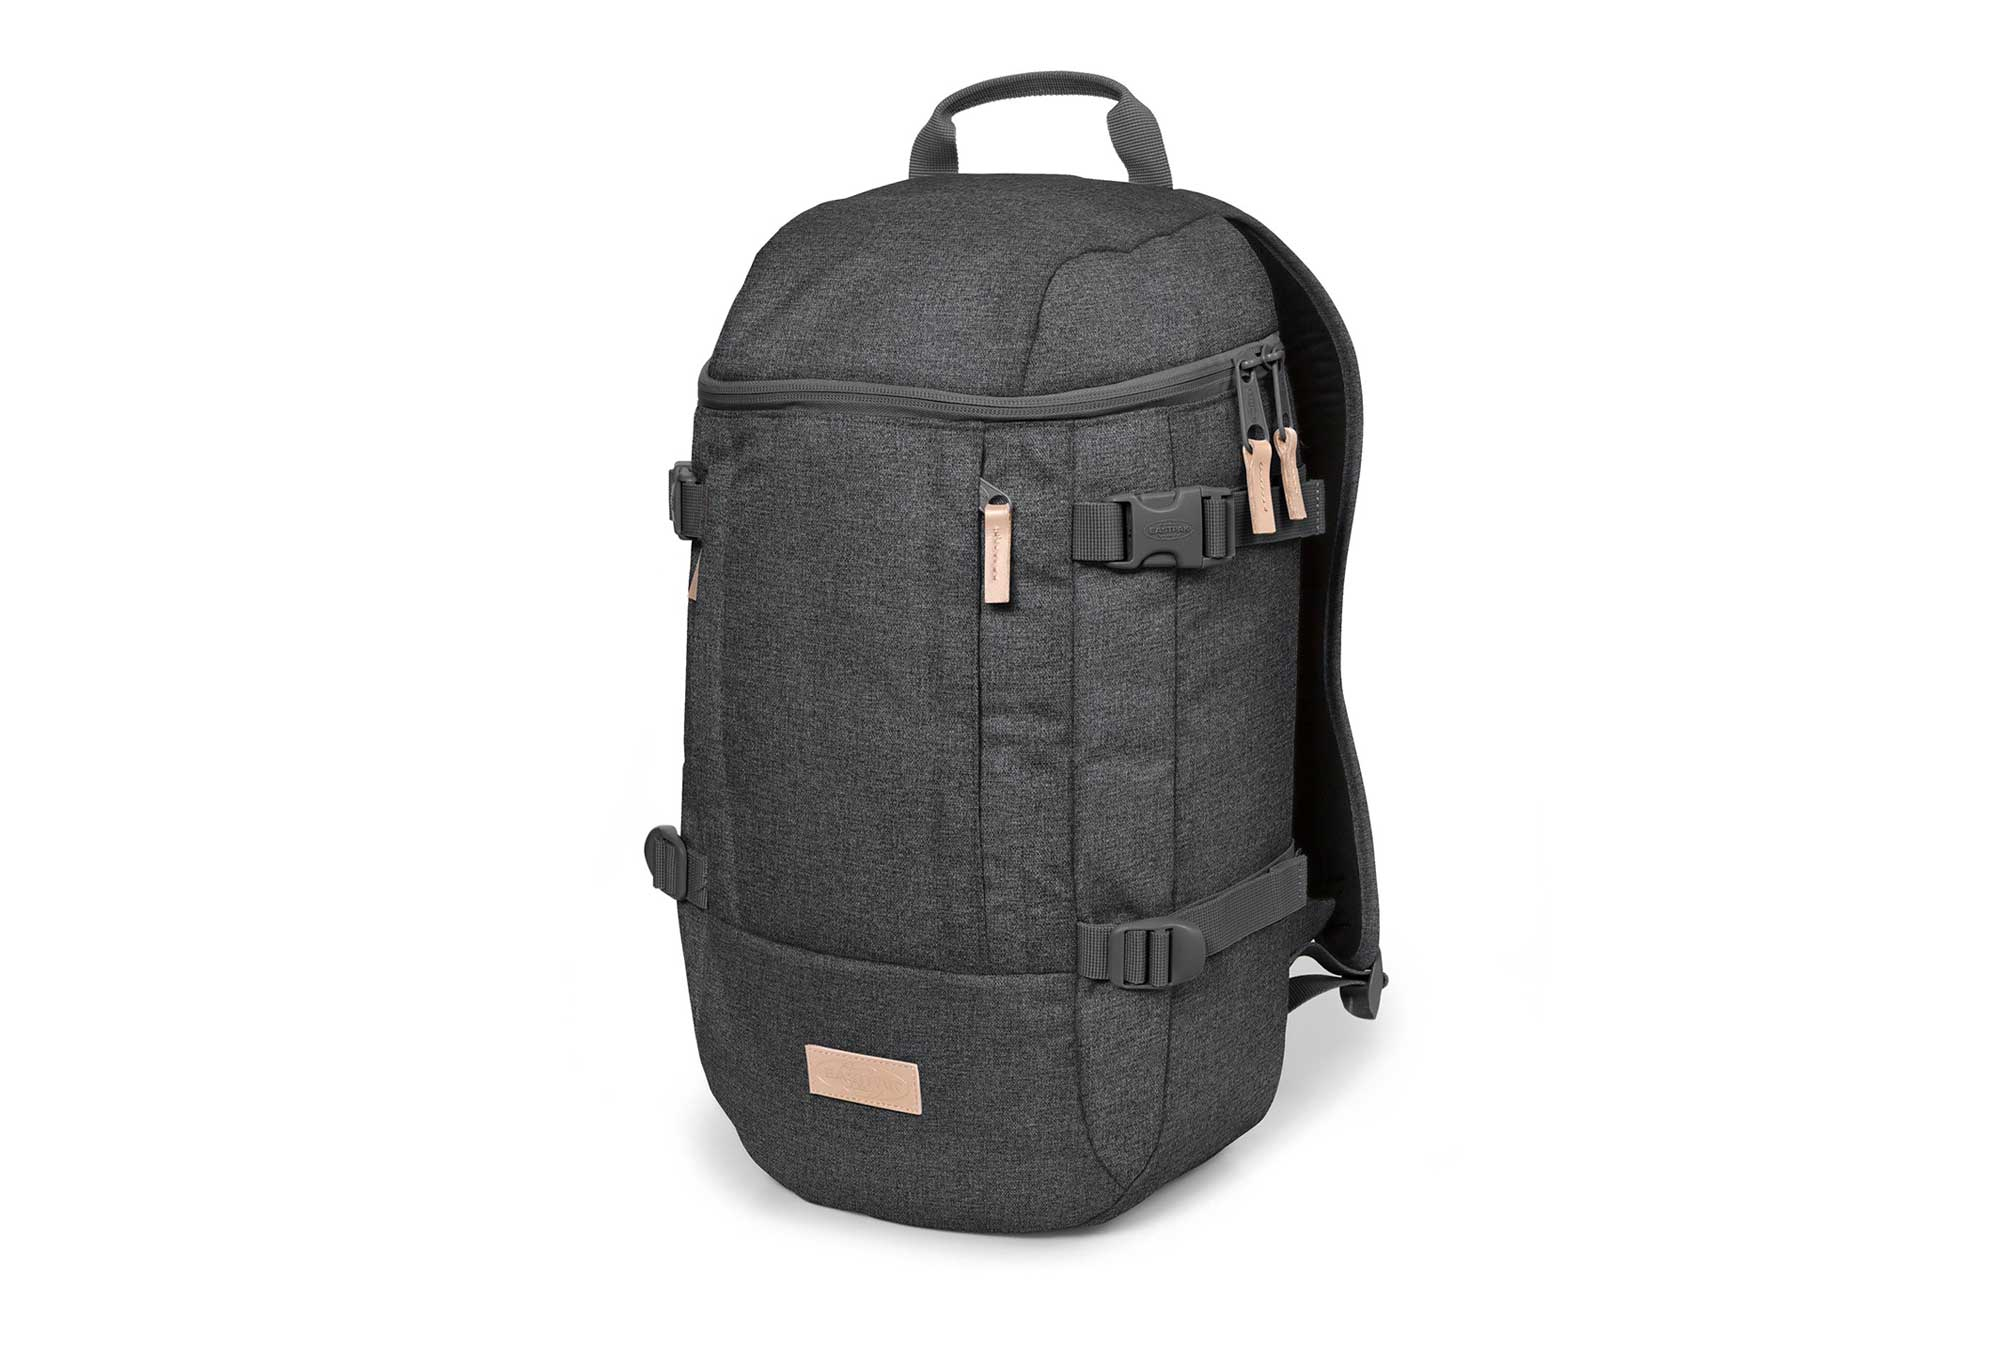 Dos Denim Eastpak Sac À Topfloid Black qVSzUMpG